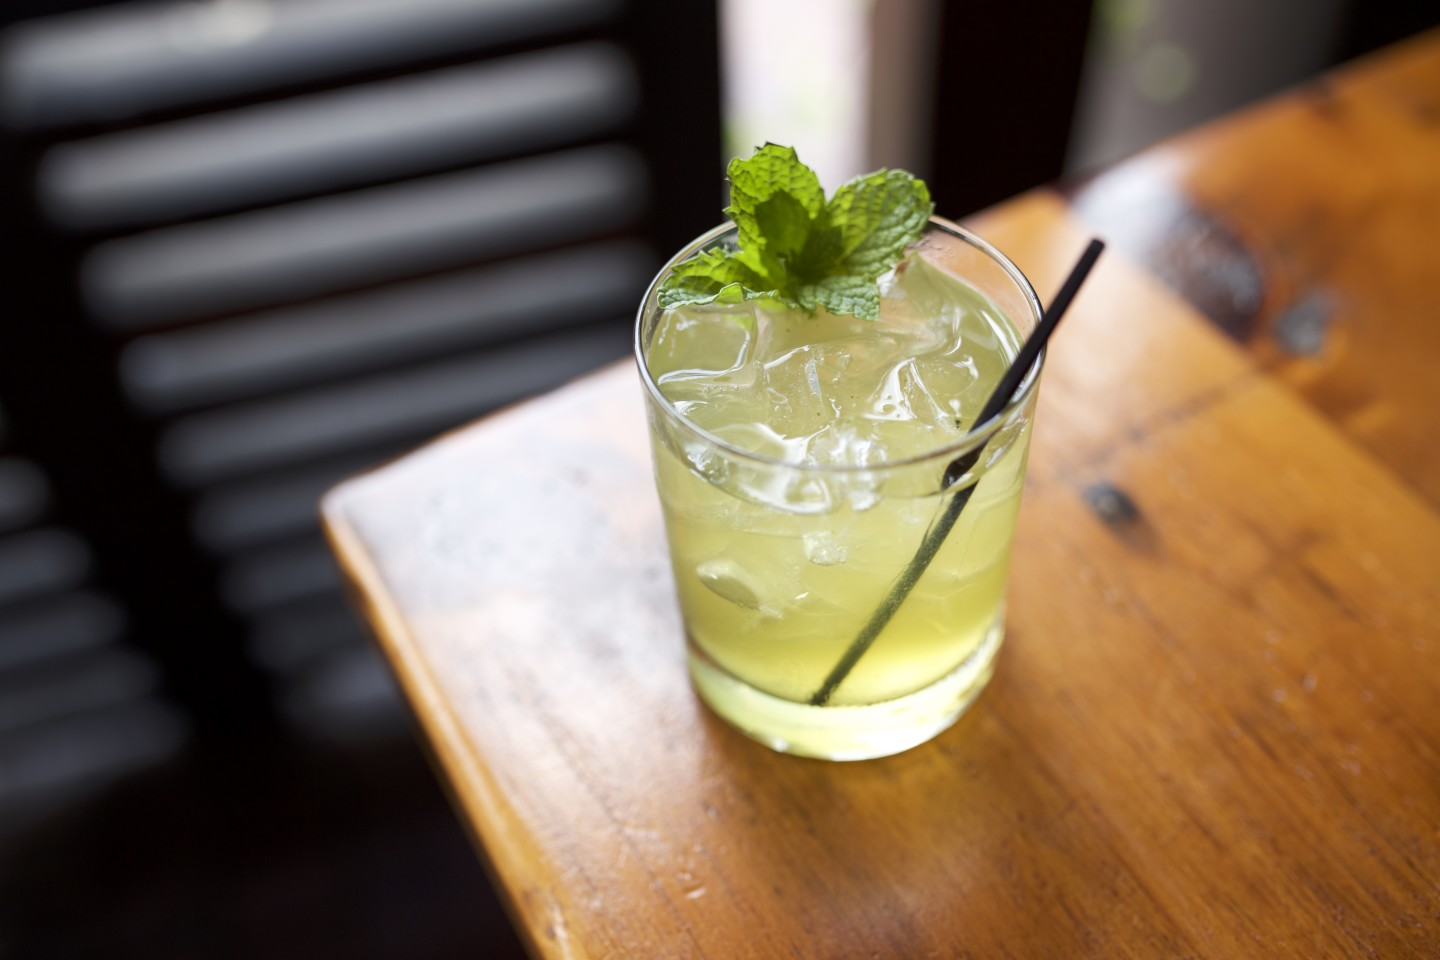 Drankin' in the Hoods —A guide to drinking in the 904